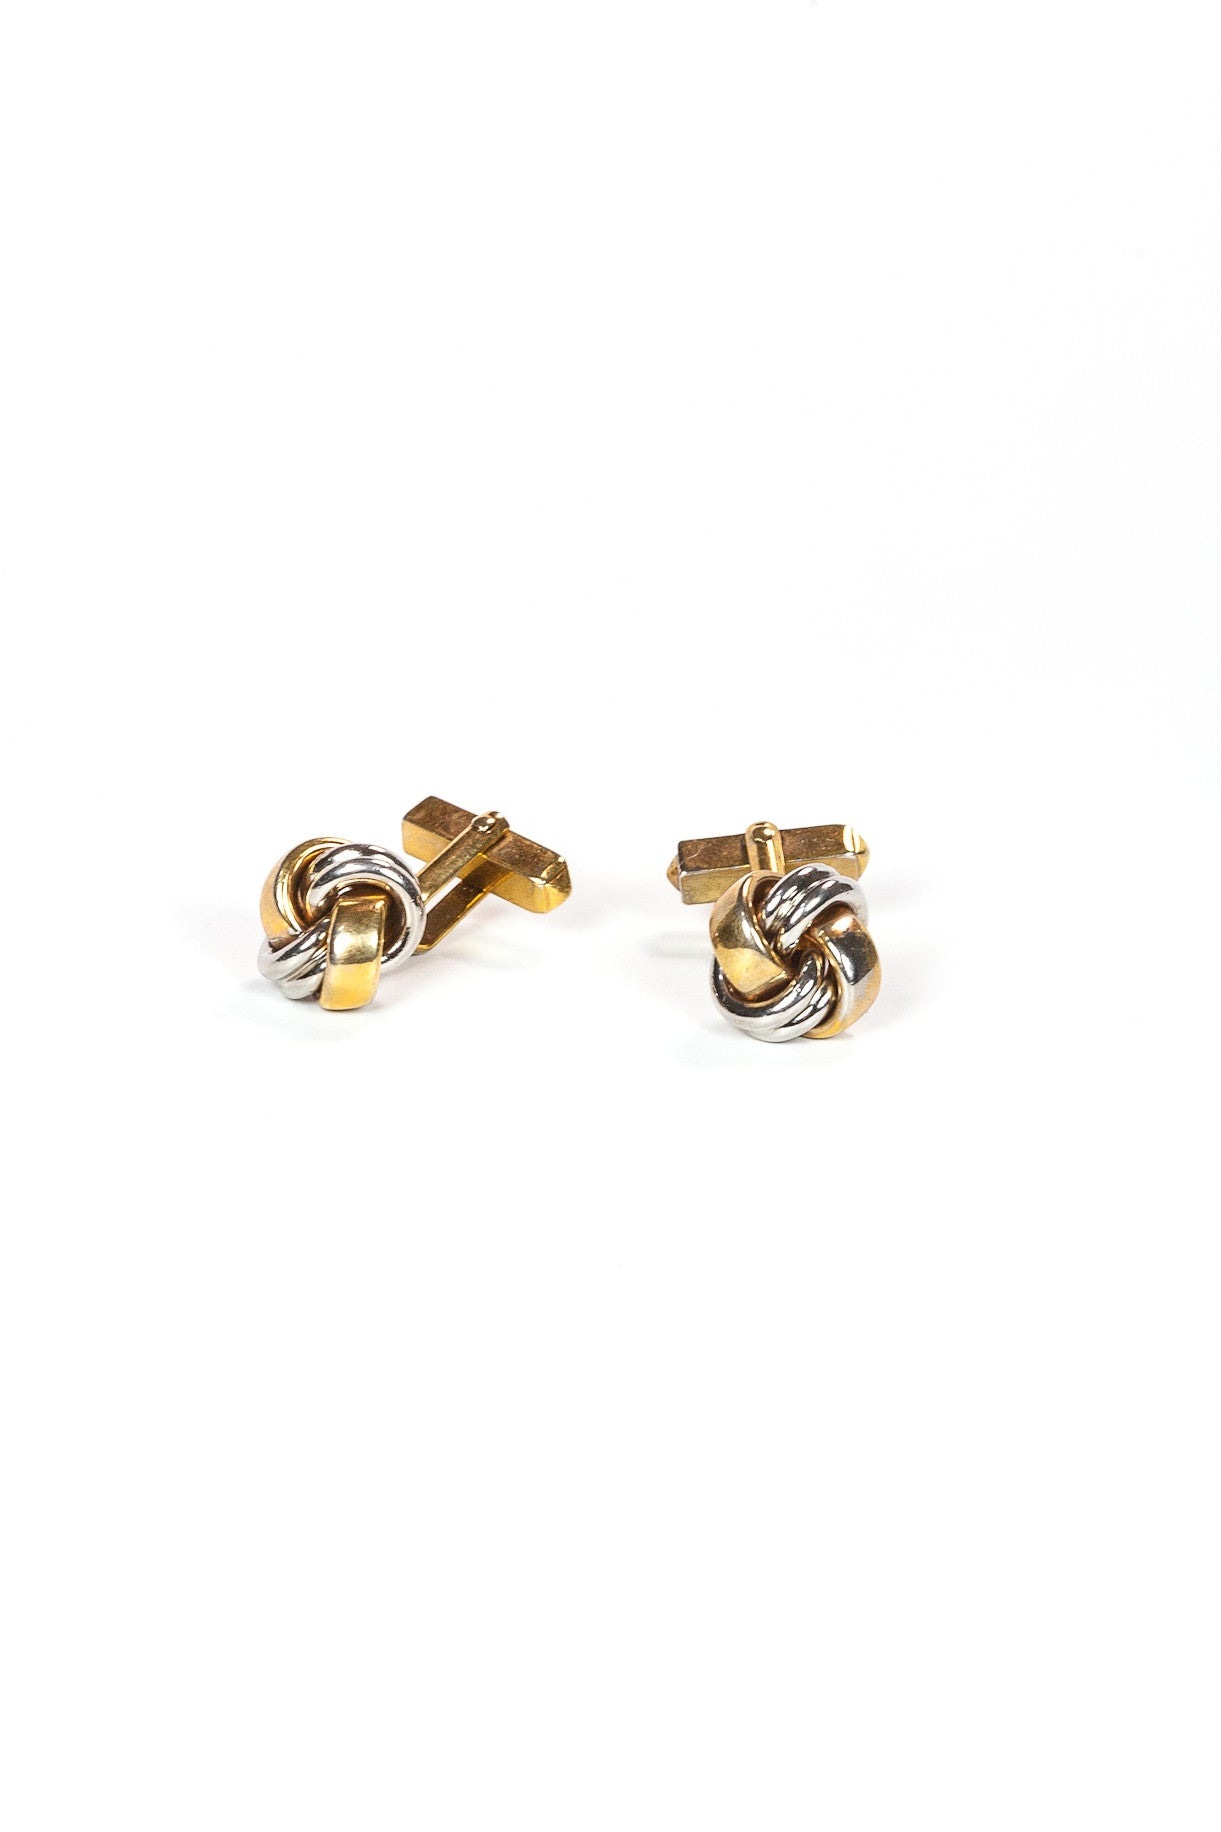 70's__Swank__Knot Cuff Links